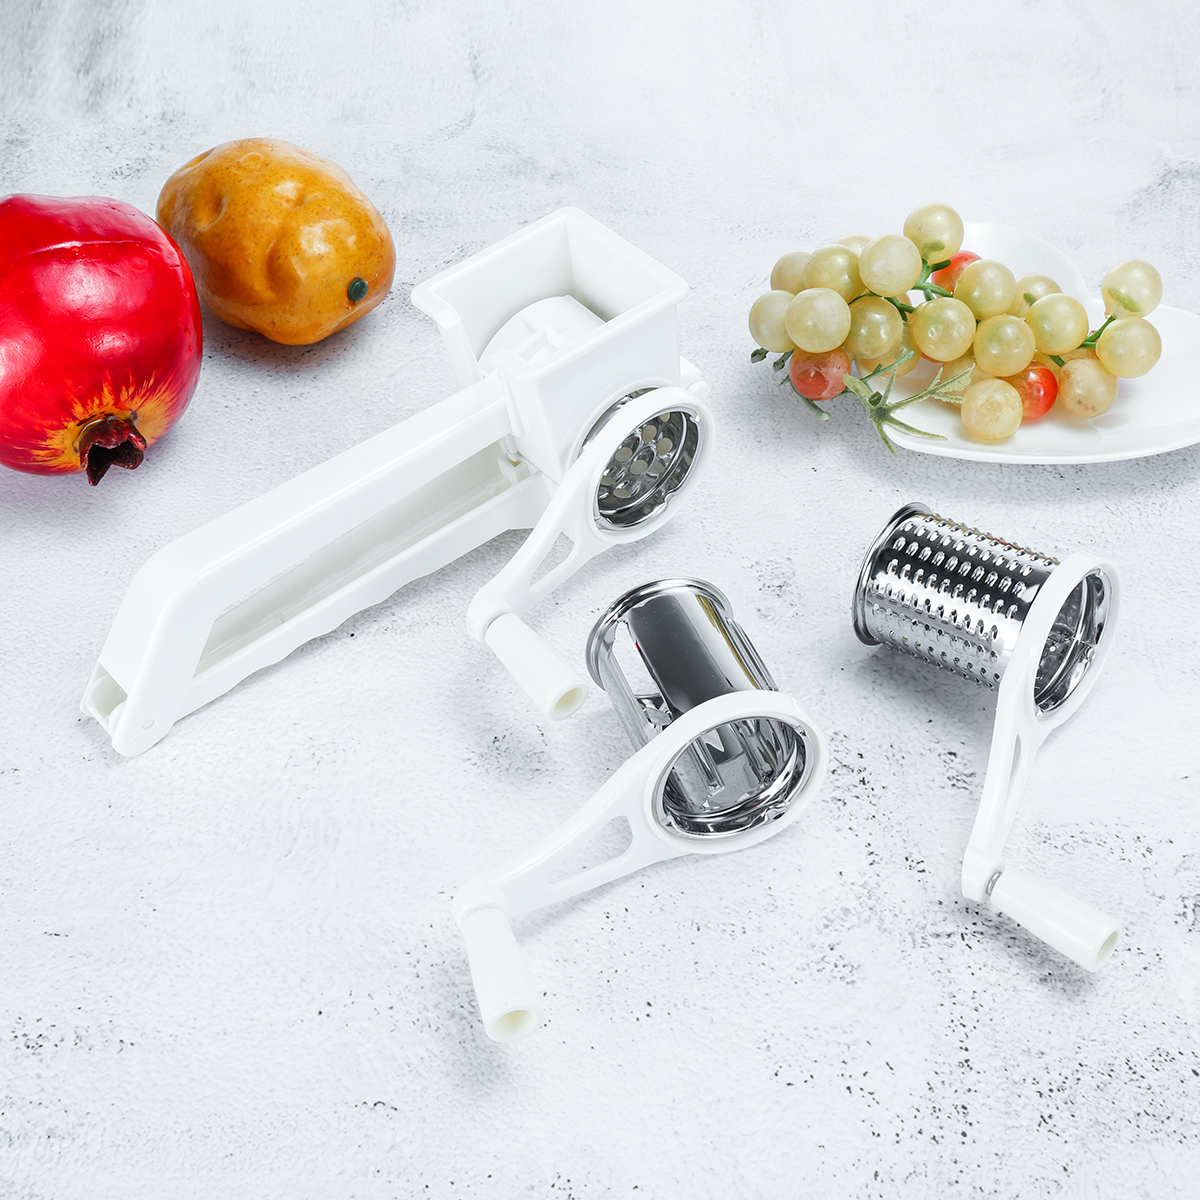 3 In 1 Manual Cheese Grater Rotary Grater Butter Vegetable Fruit Slicer Cutter Kitchen